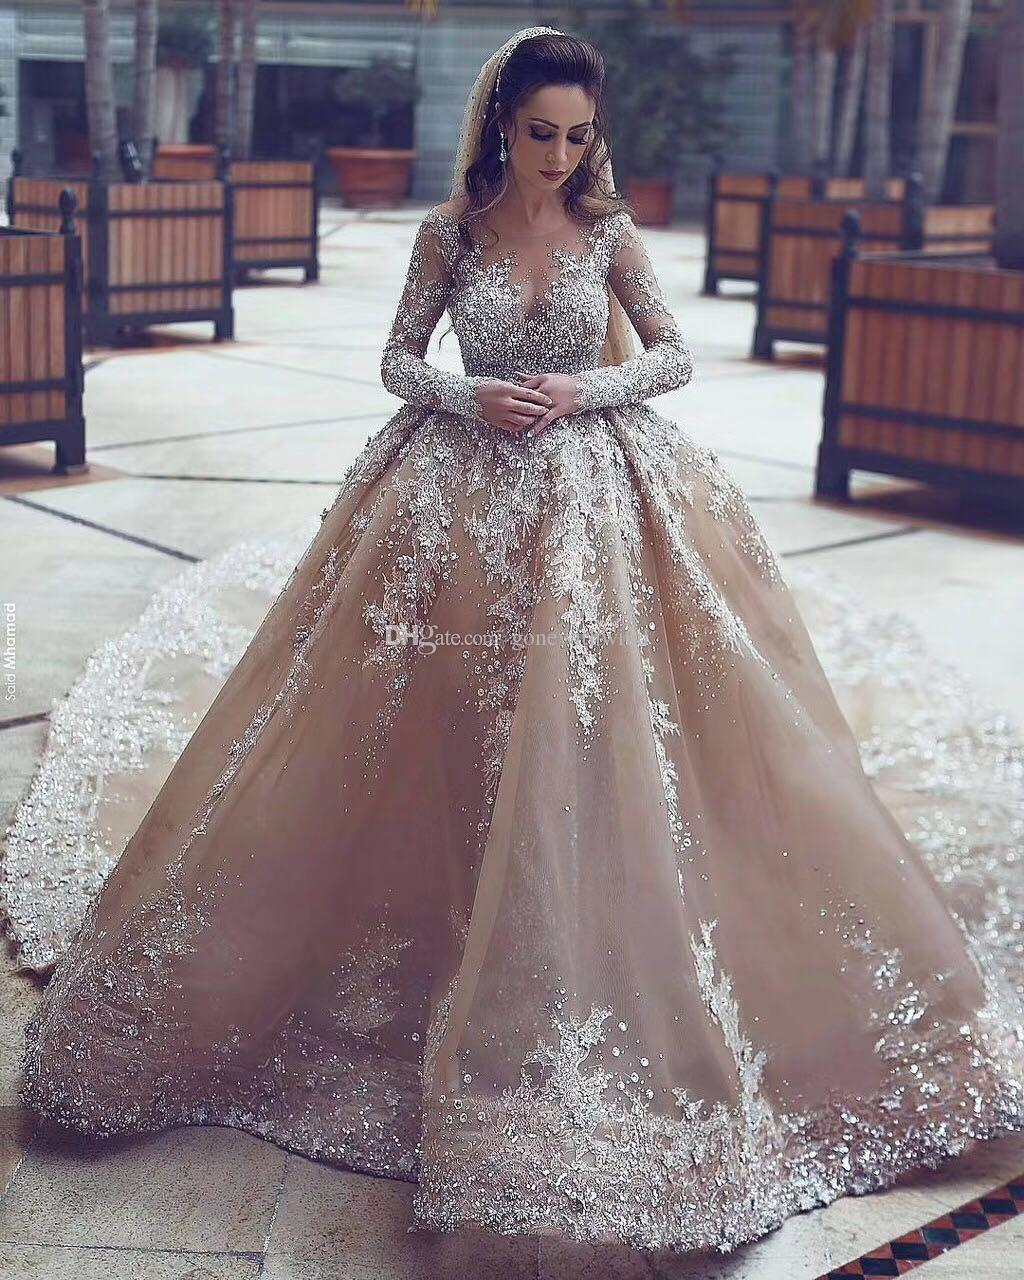 Arab dubai pakistan turkey crystals heavily embroideried ball gown arab dubai pakistan crystals heavily embroideried ball gown champagne wedding dresses 2018 long sleeves jewel neckline chapel train ombrellifo Images